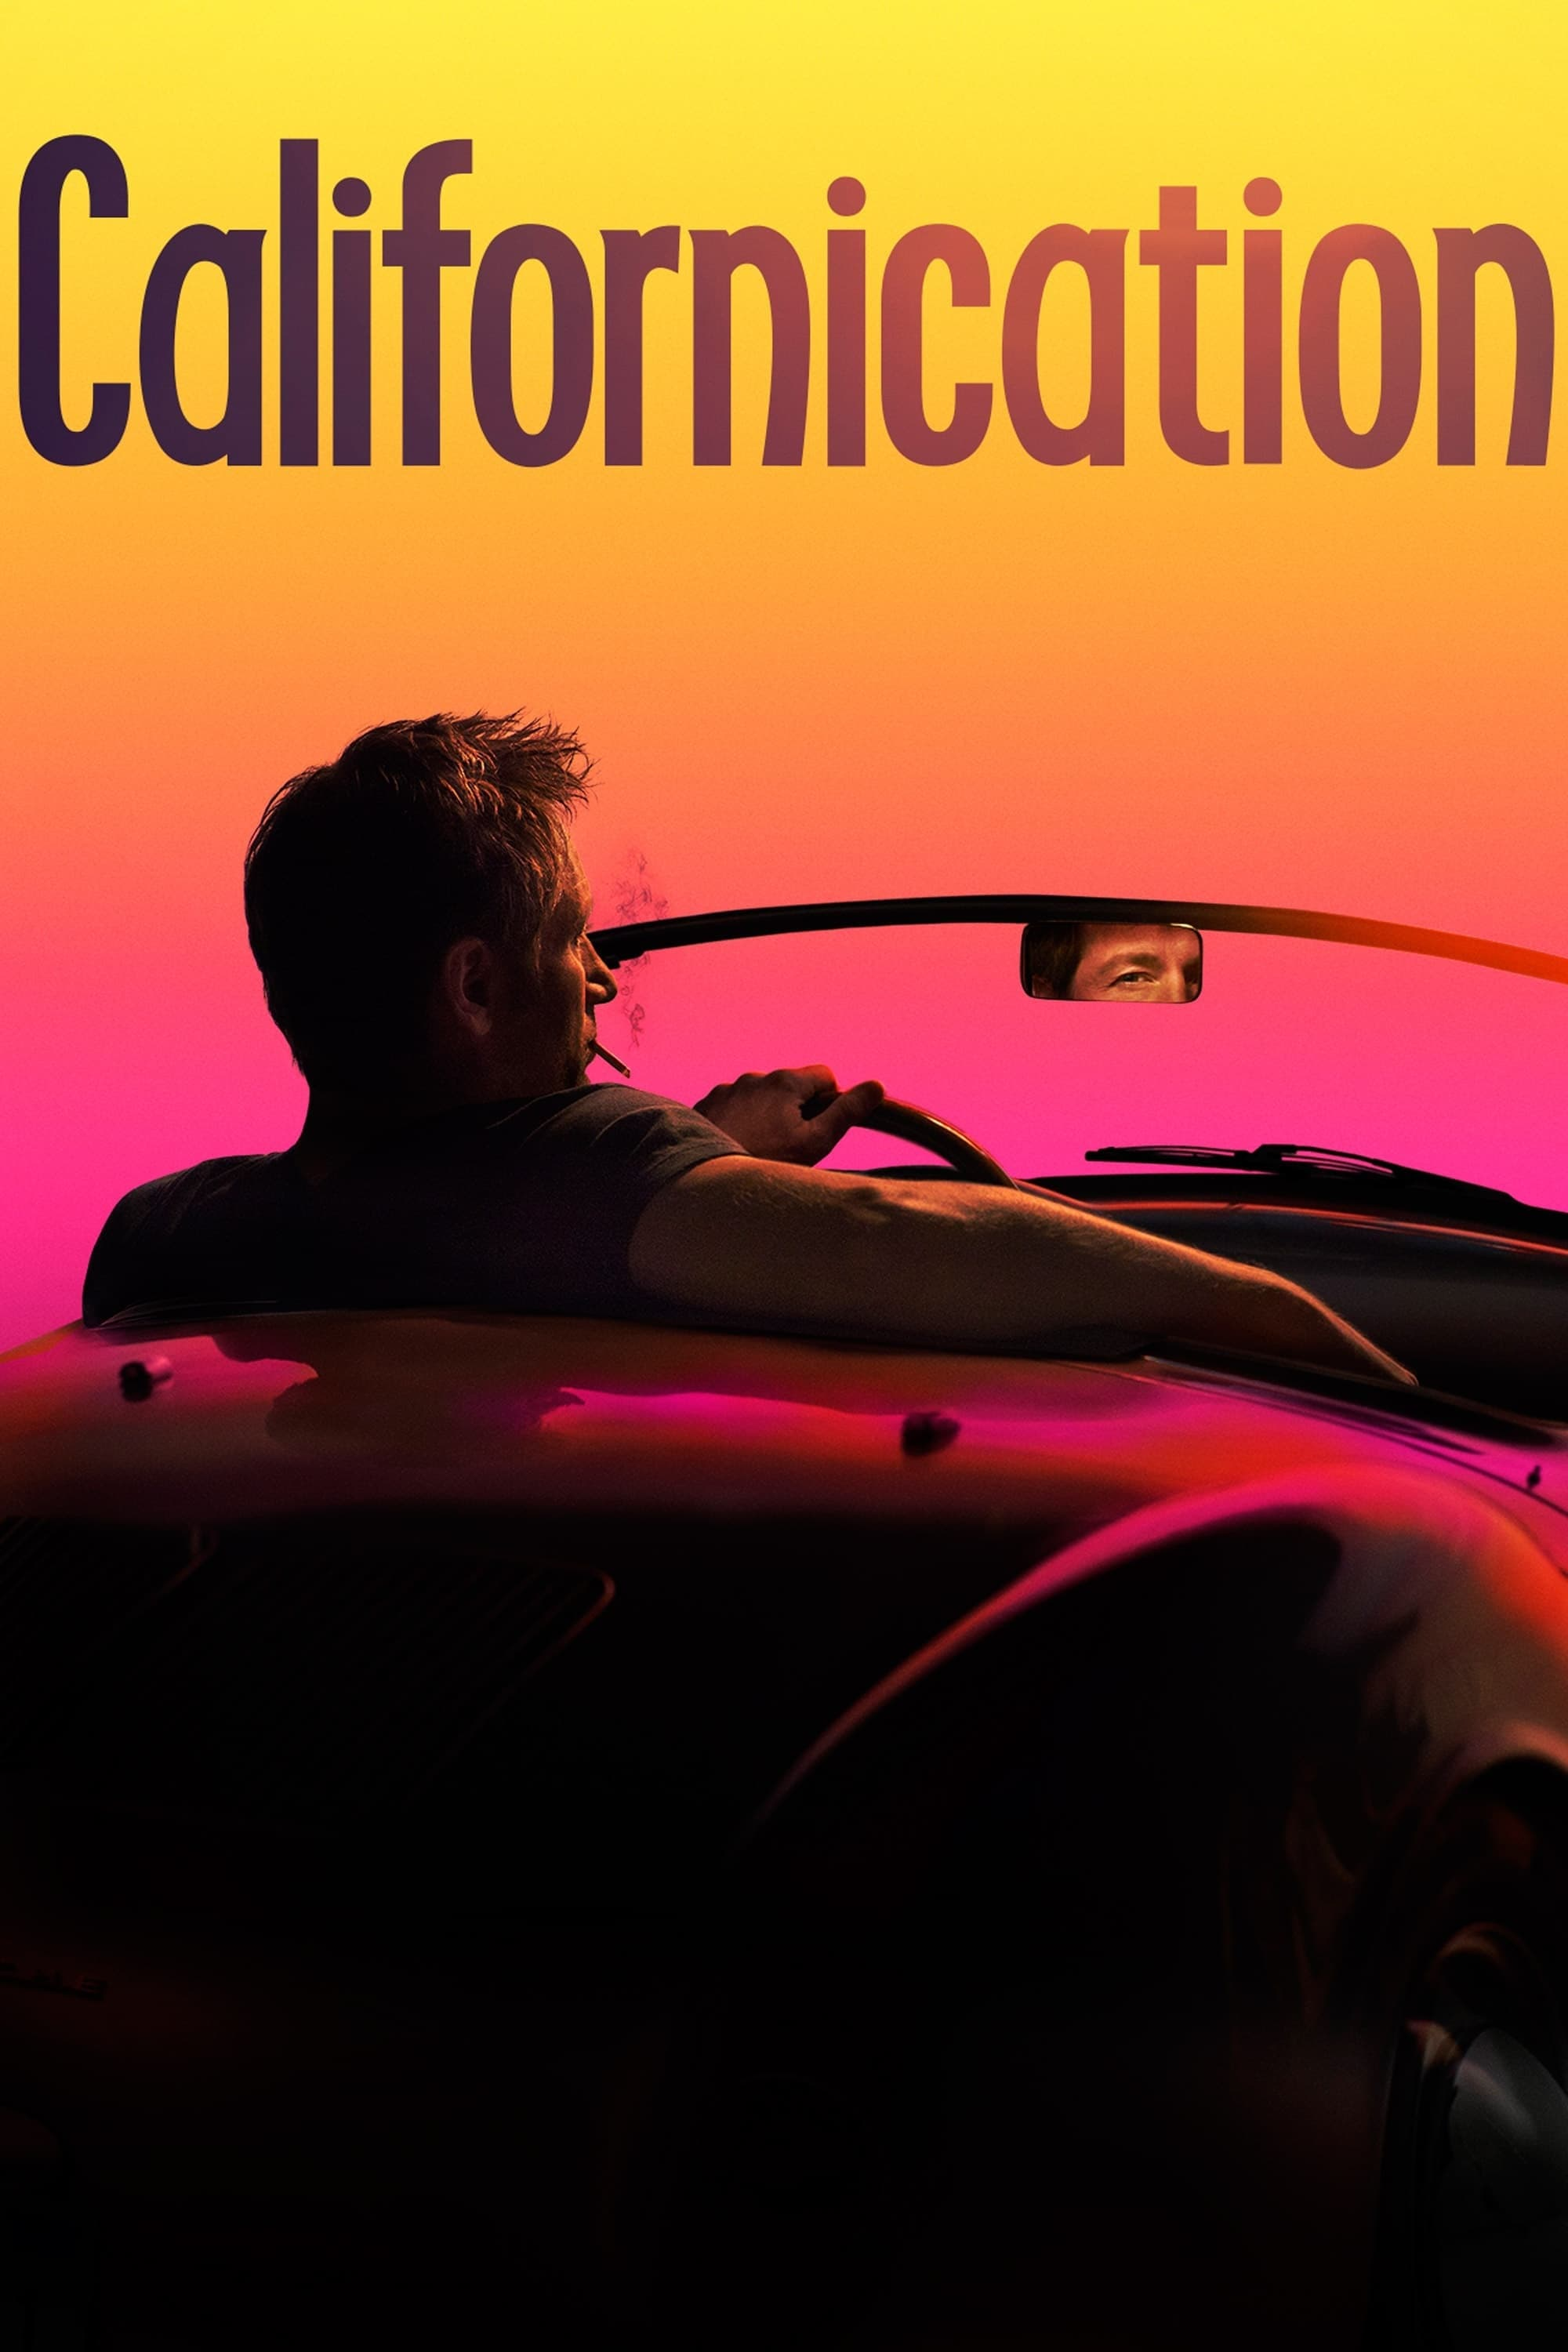 Californication' />